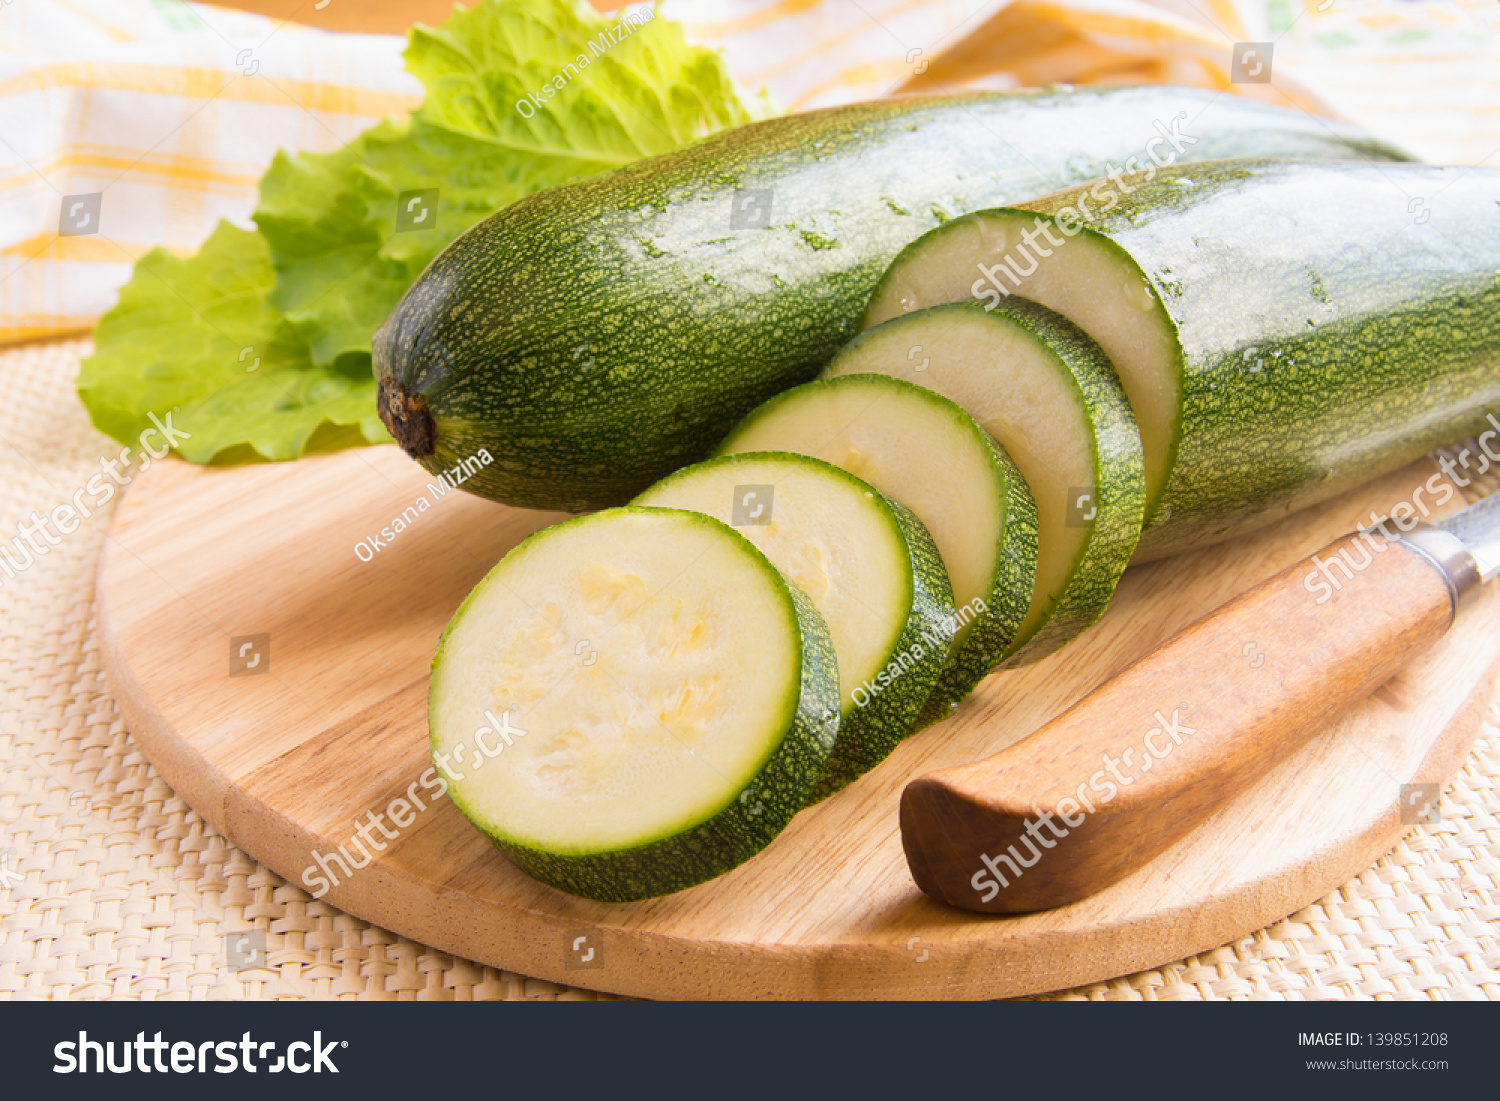 Green Zucchini Sliced And Whole With Knife On Wooden ...